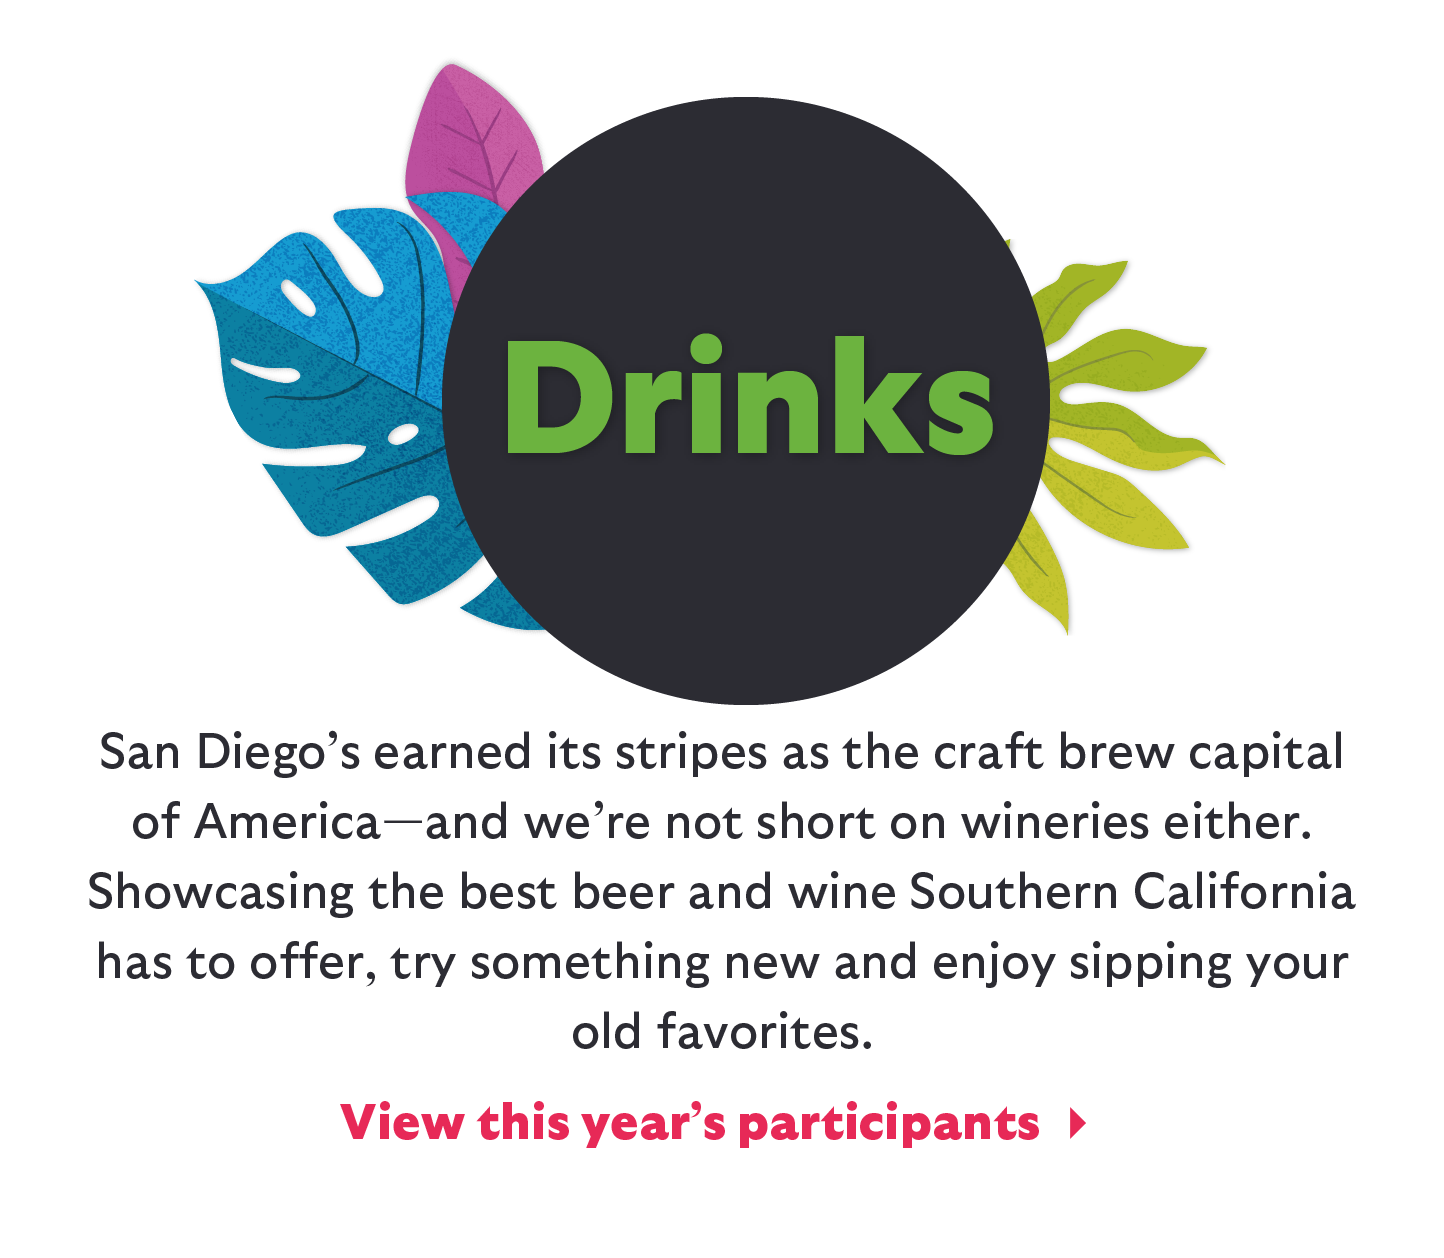 San Diego's earned its stripes as the craft brew capital of America--and we're not short on wineries either. Showcasing the best beer and wine southern California has to offer, try something new and enjoy sipping your old favorites. View this year's participants.